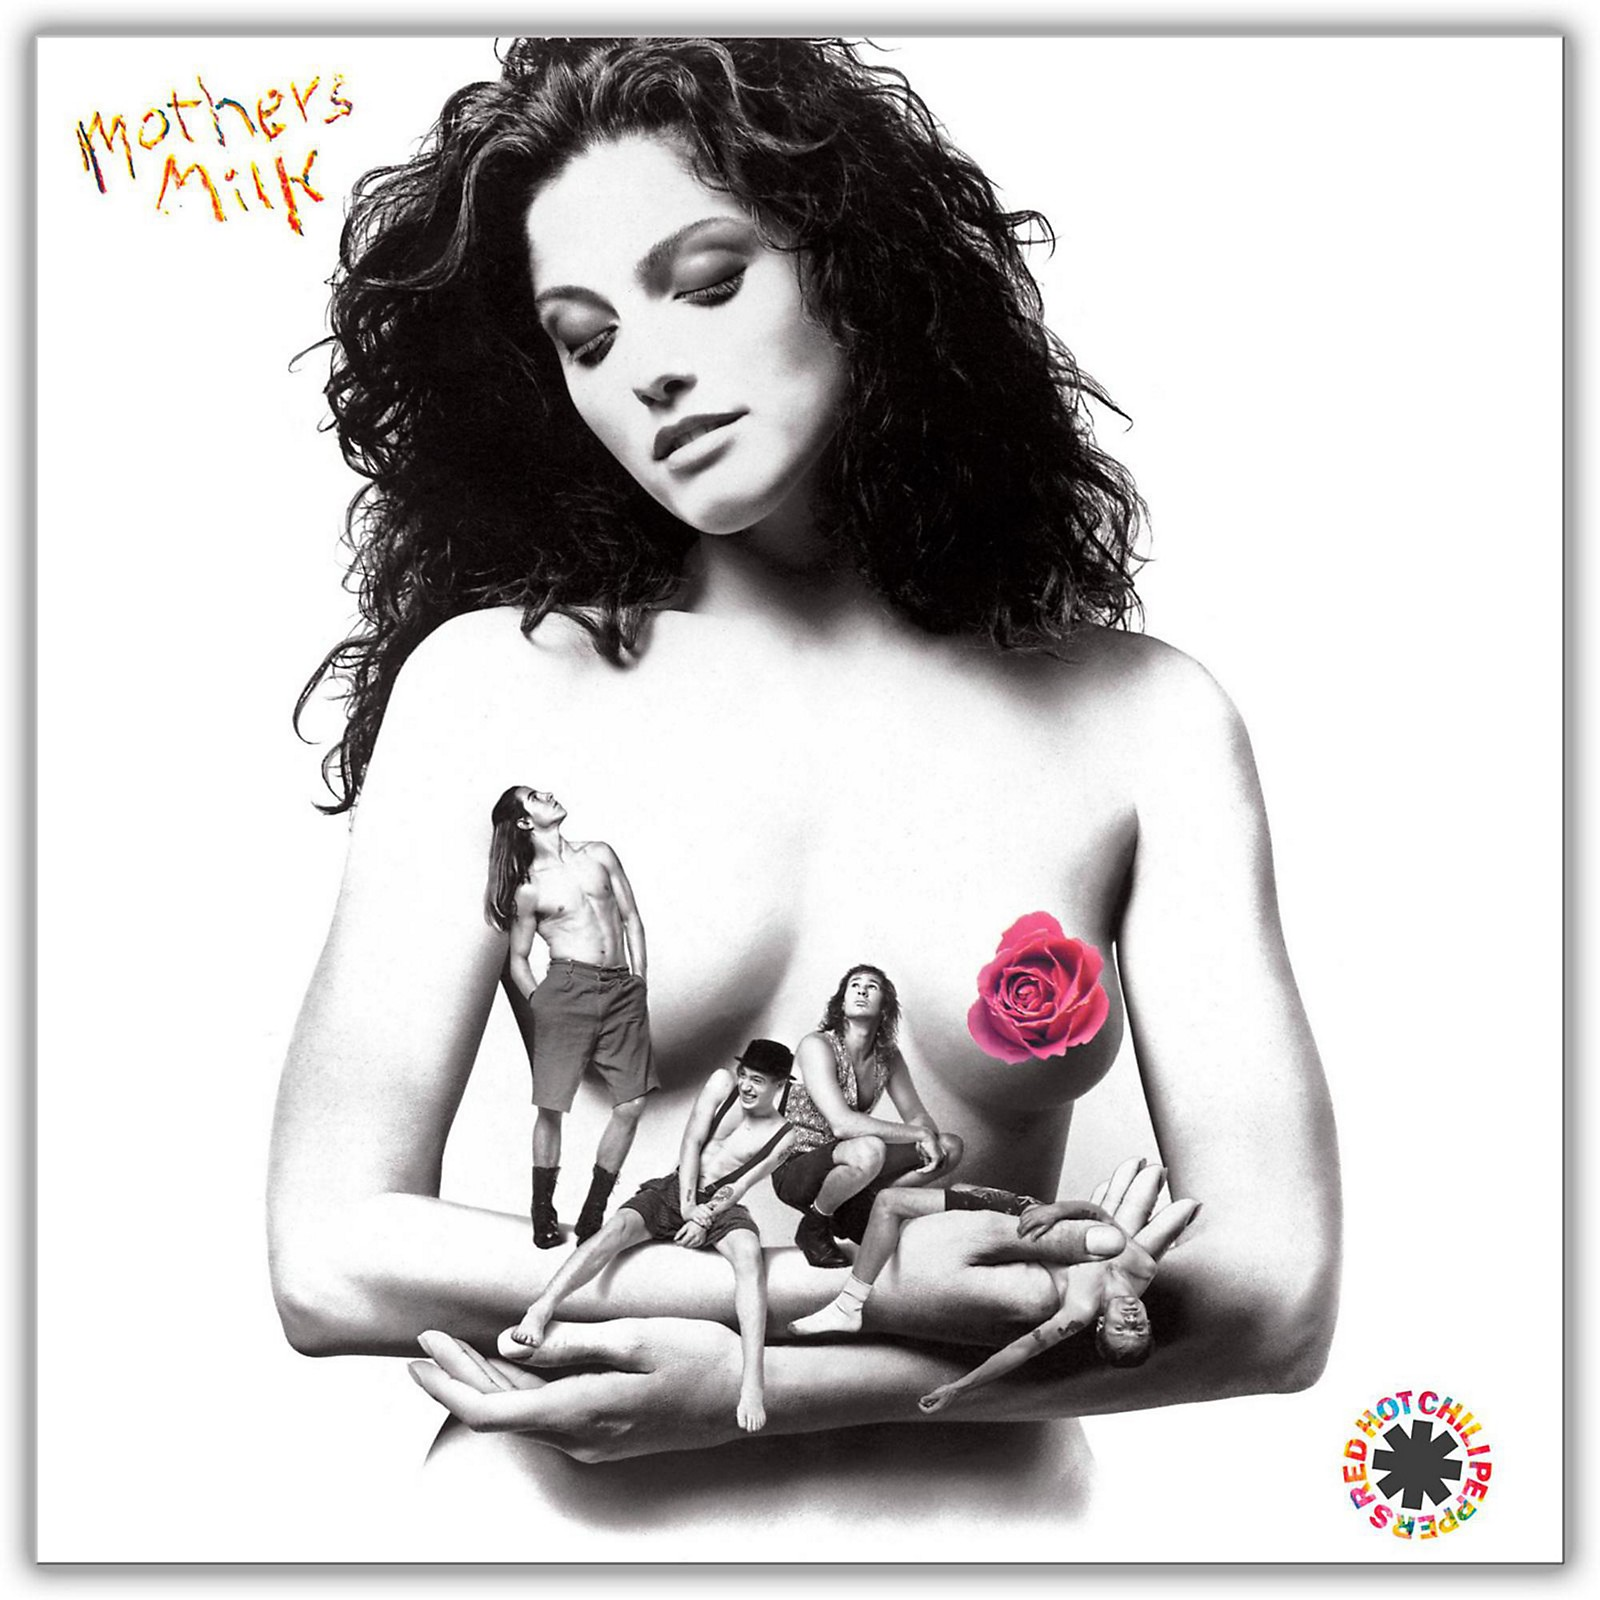 Universal Music Group Red Hot Chili Peppers - Mother's Milk Vinyl LP